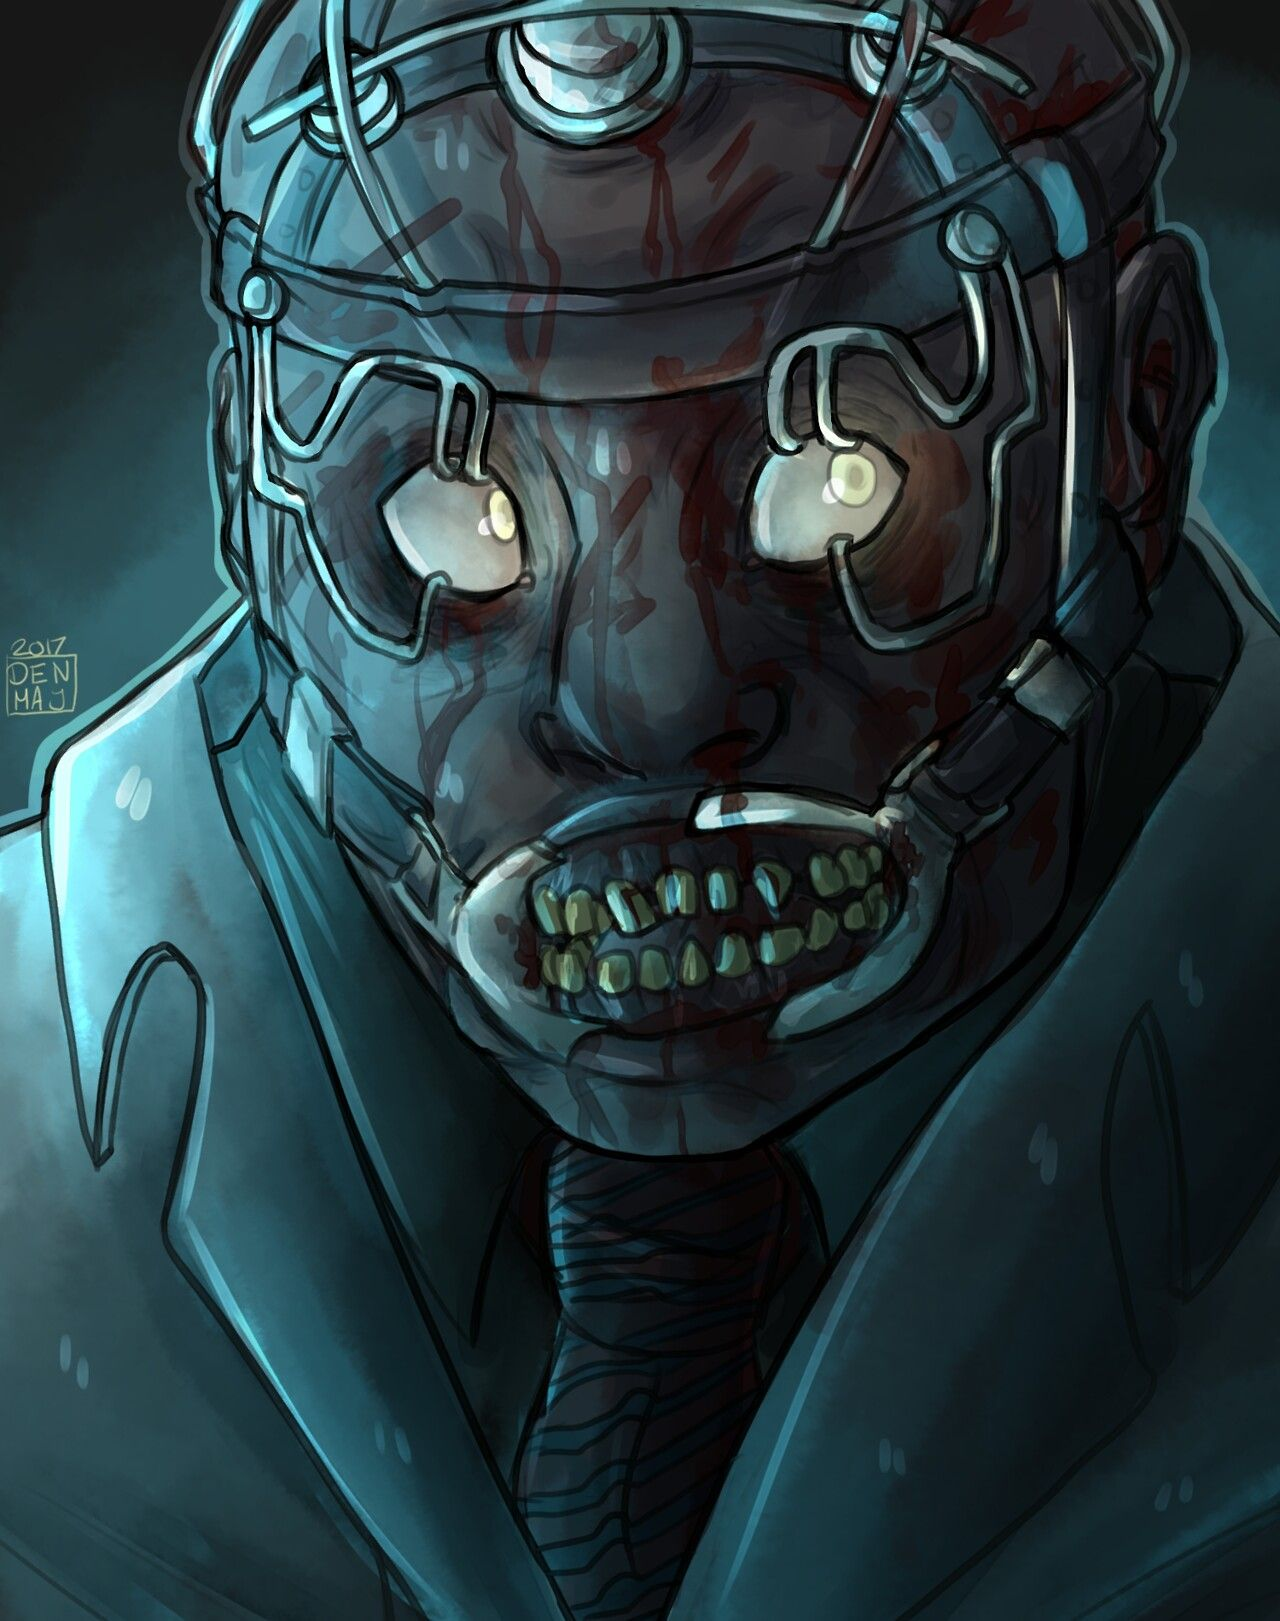 THE DOCTOR | Dead by daylight Amino